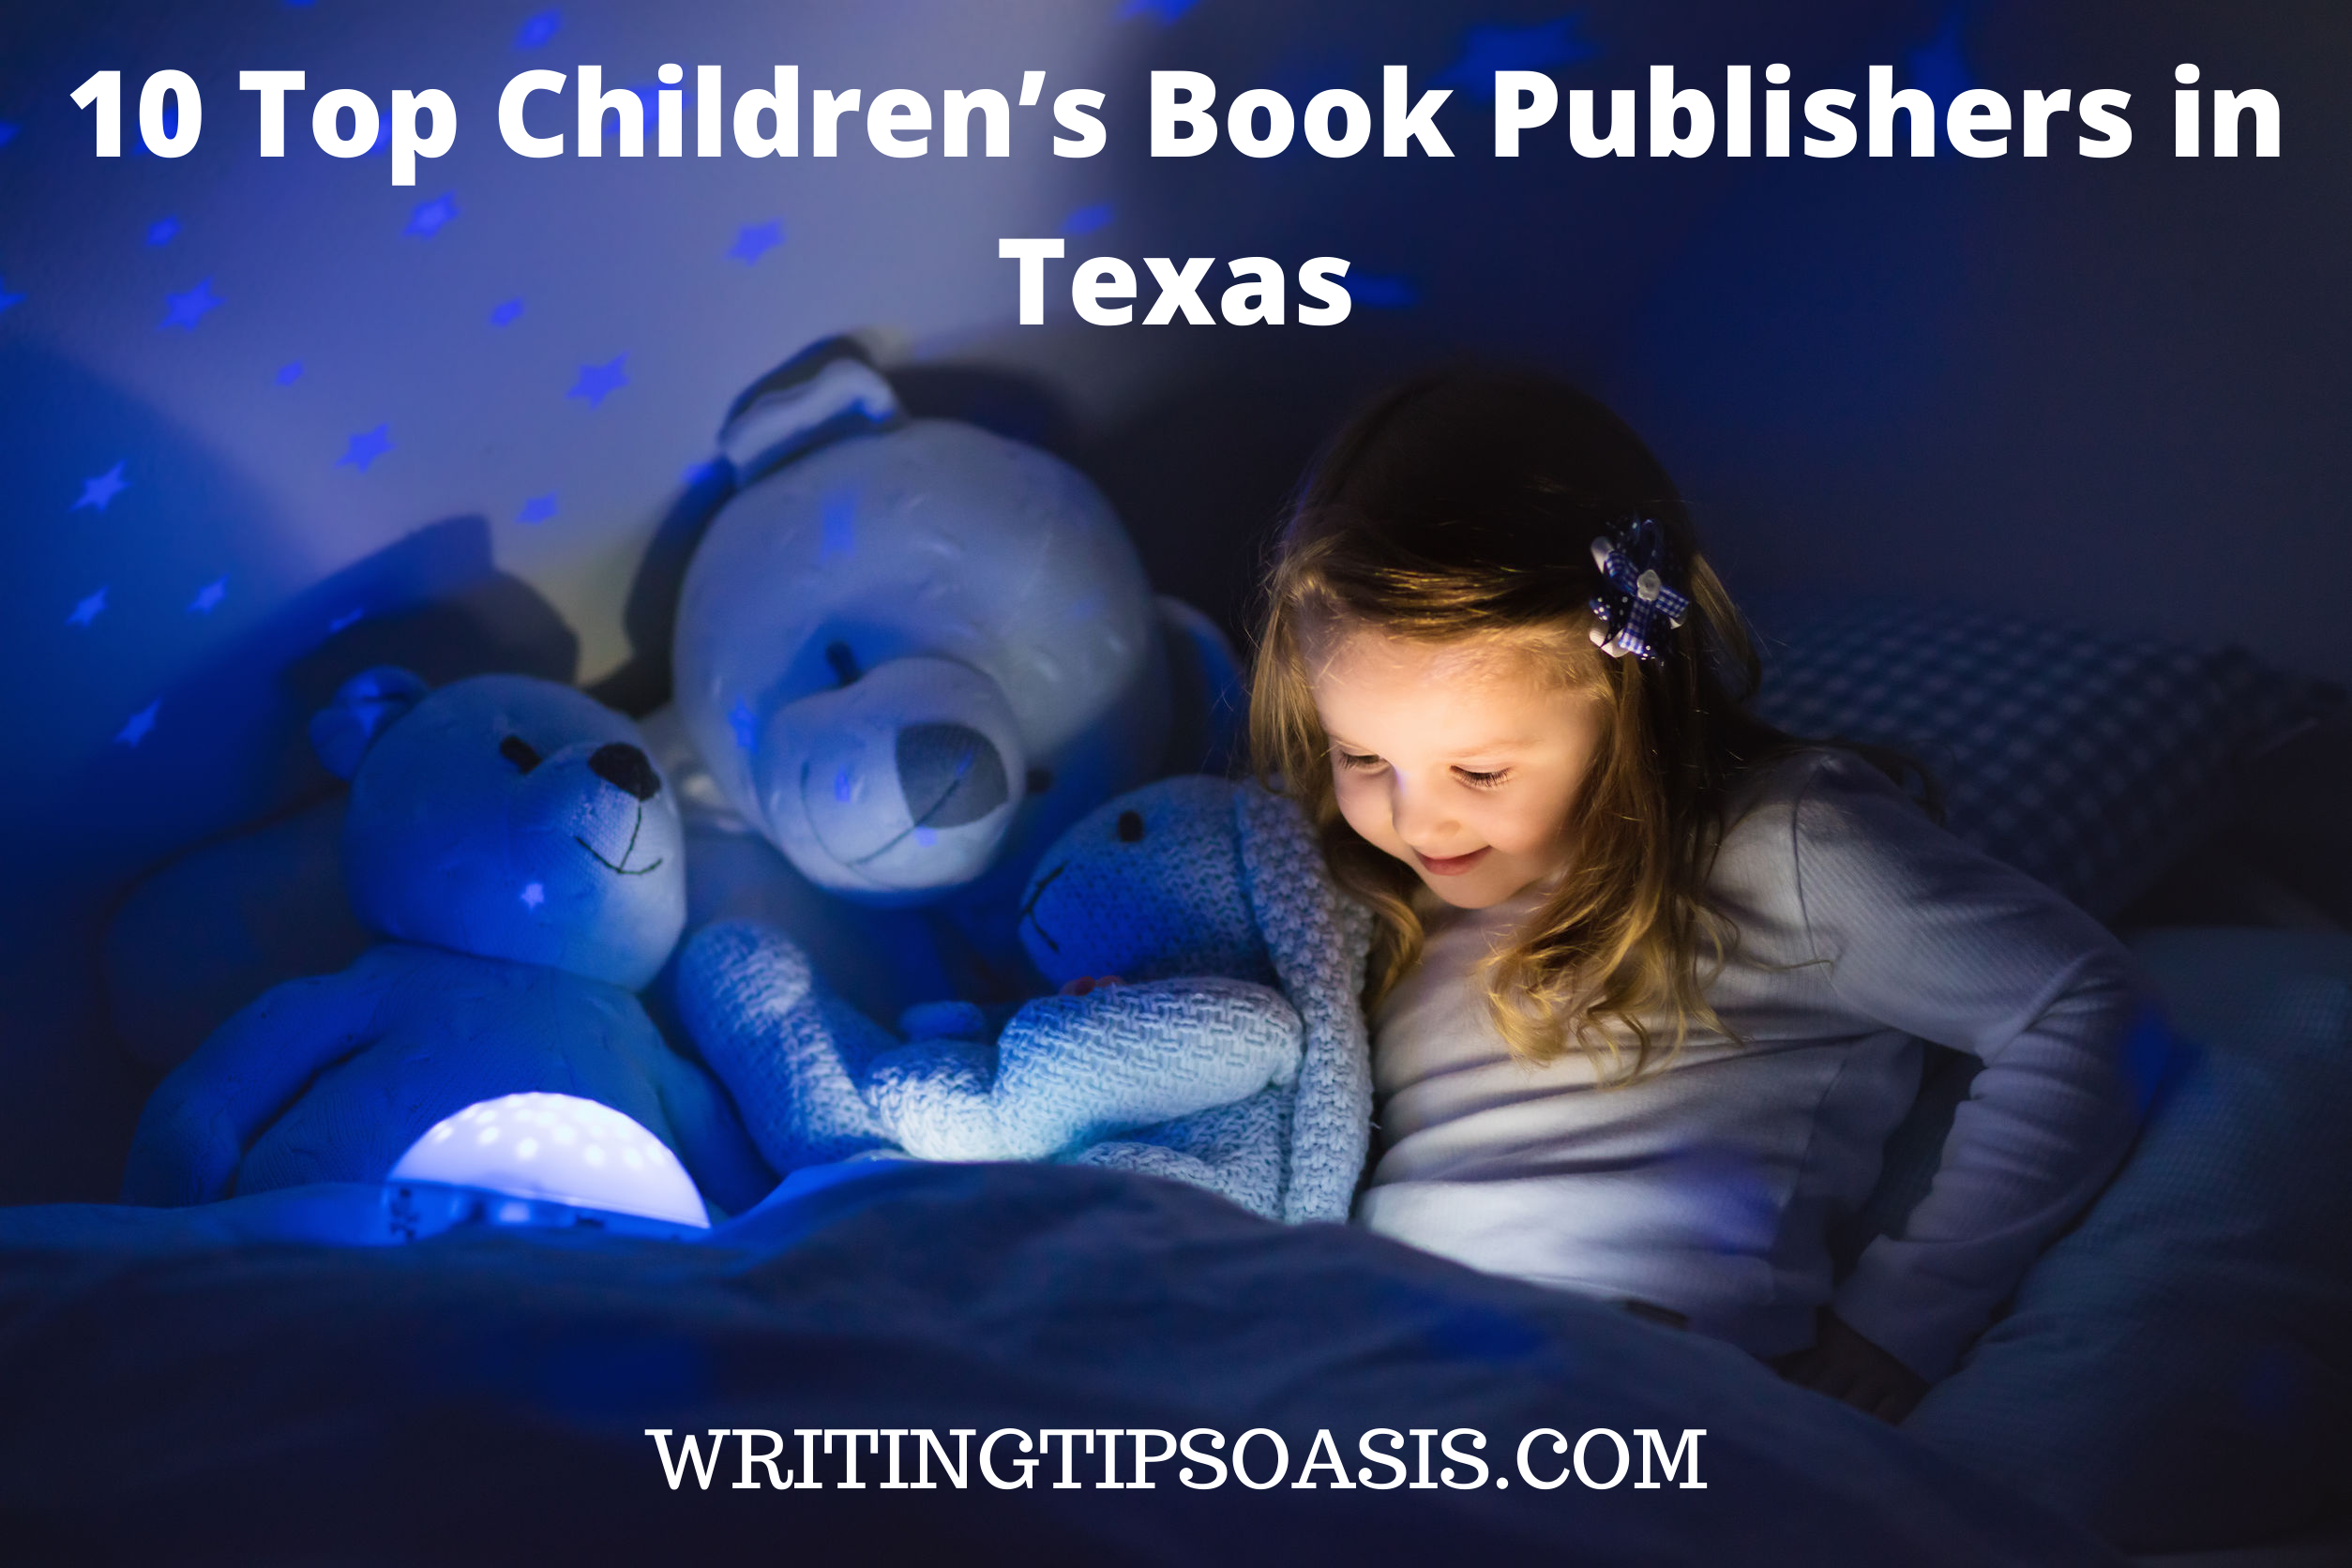 Children's Book Publishers in Texas